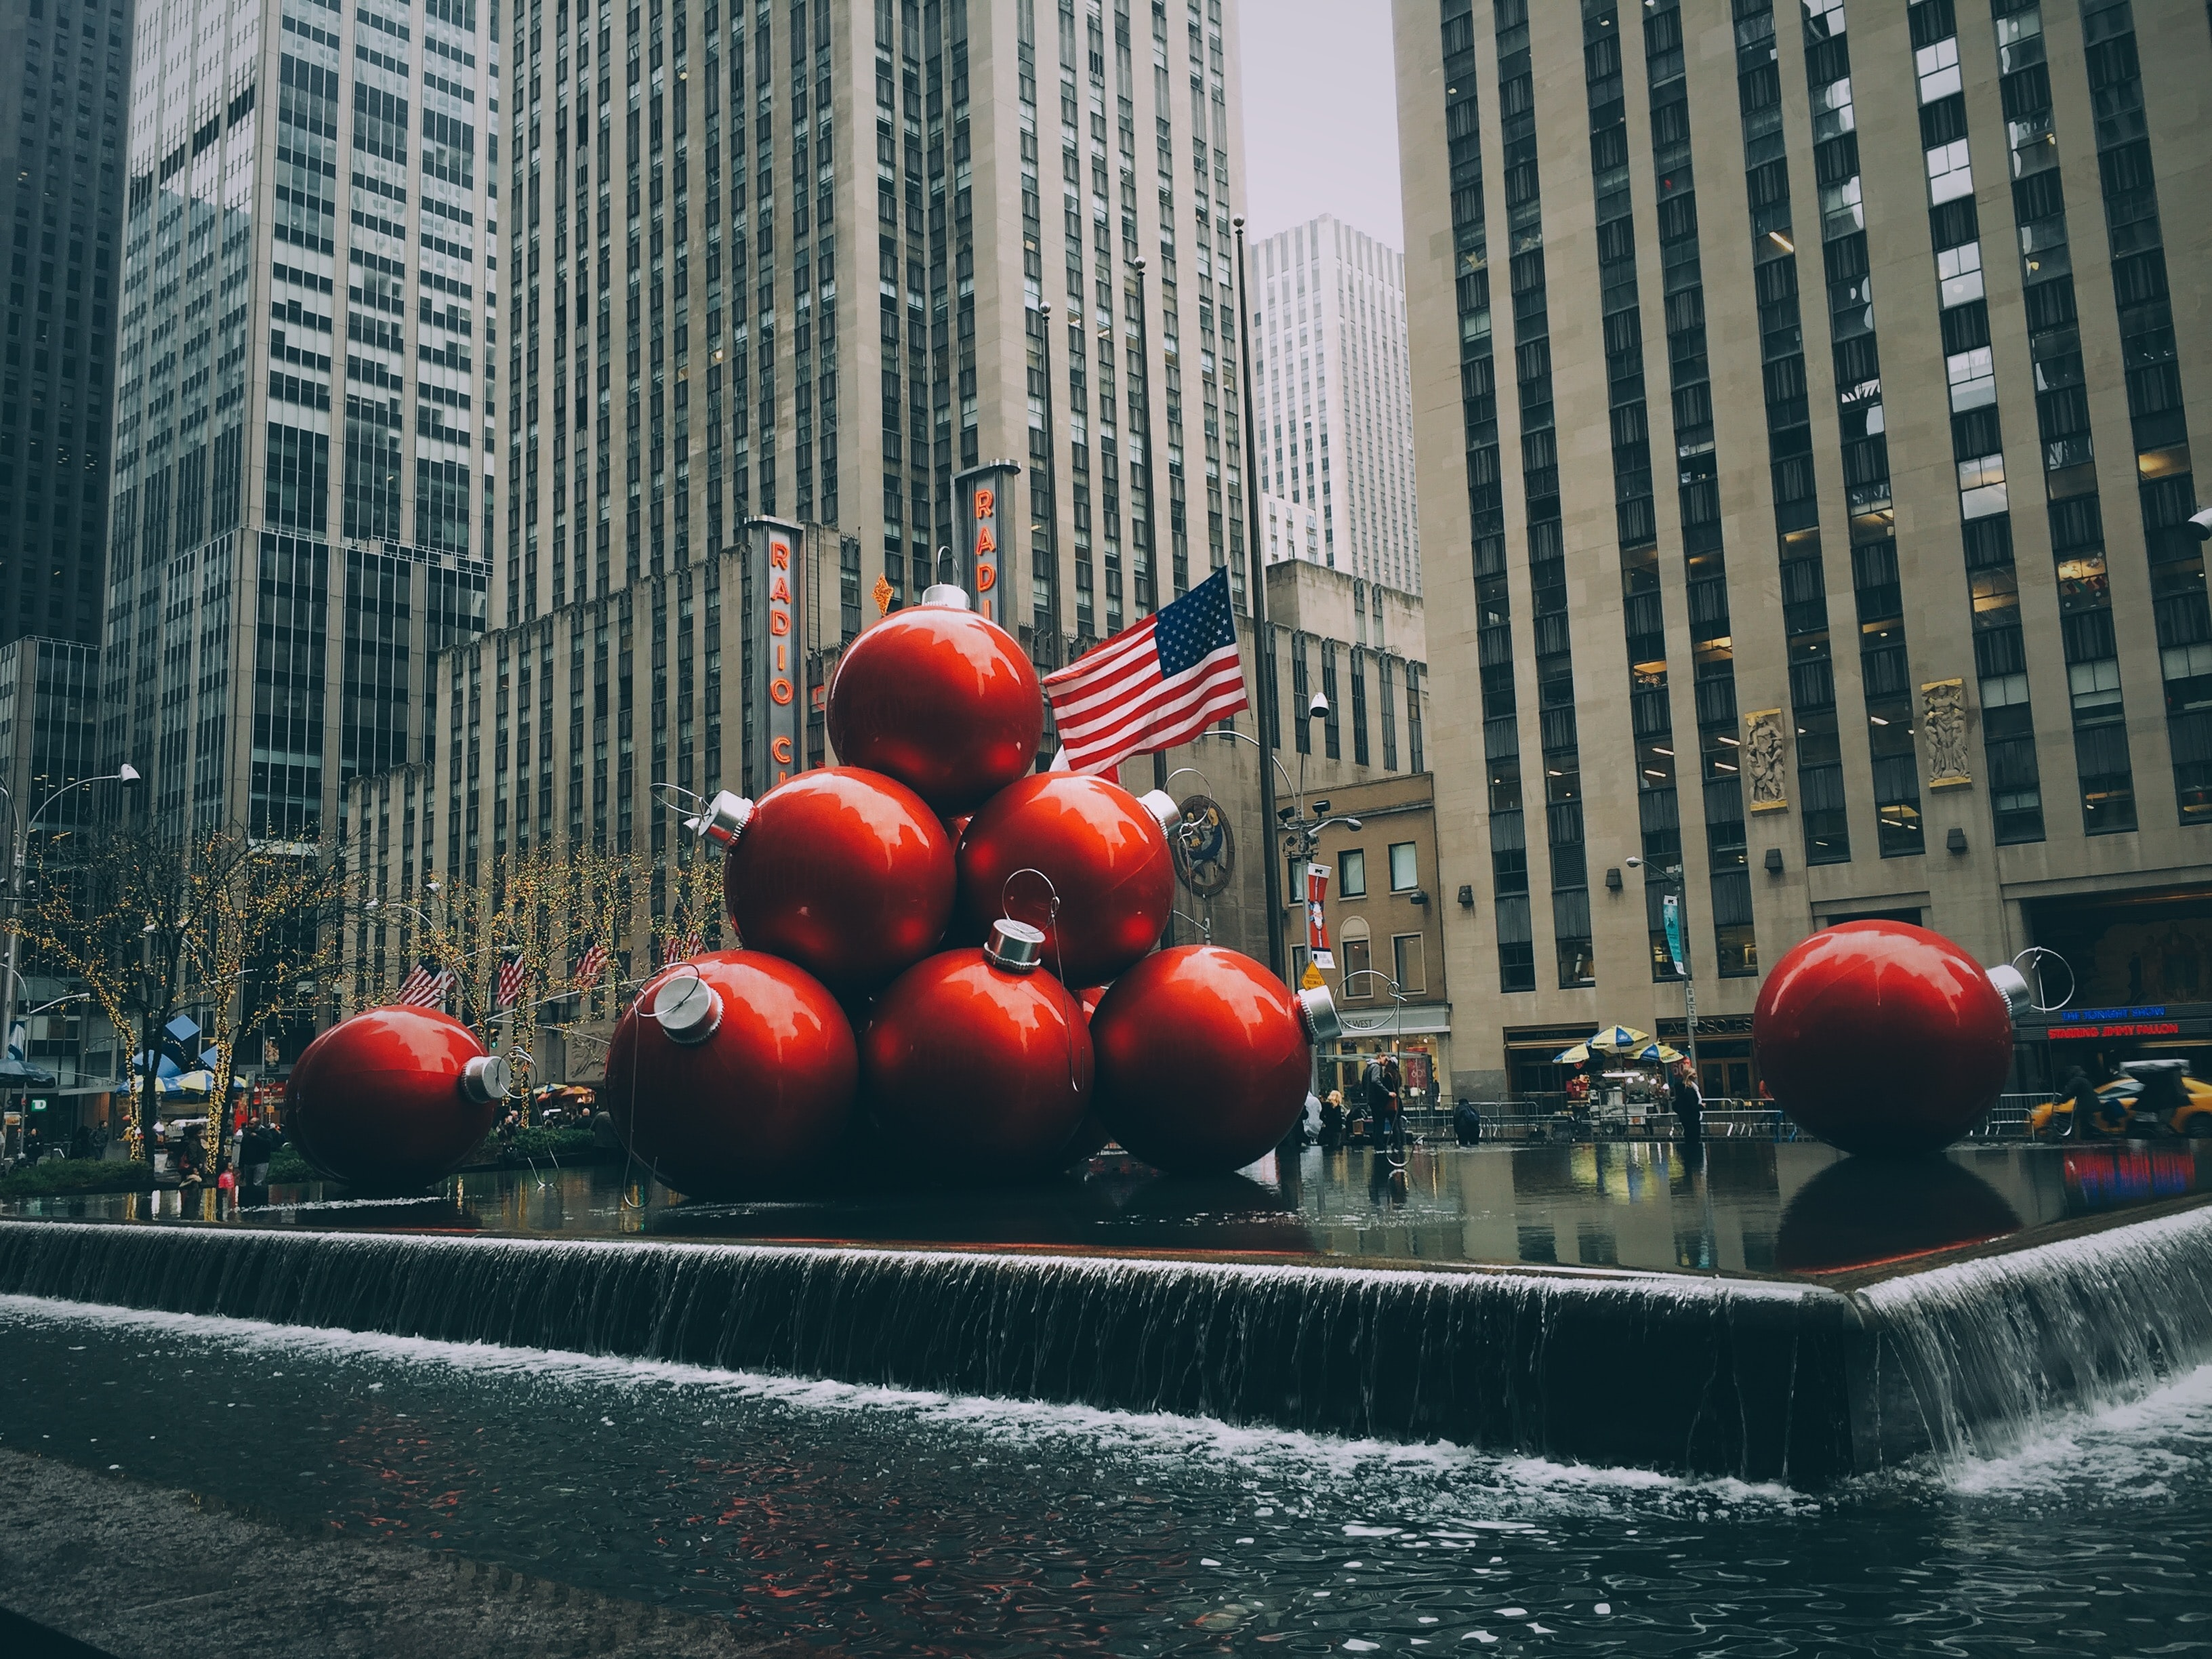 red bauble fountain near buildings